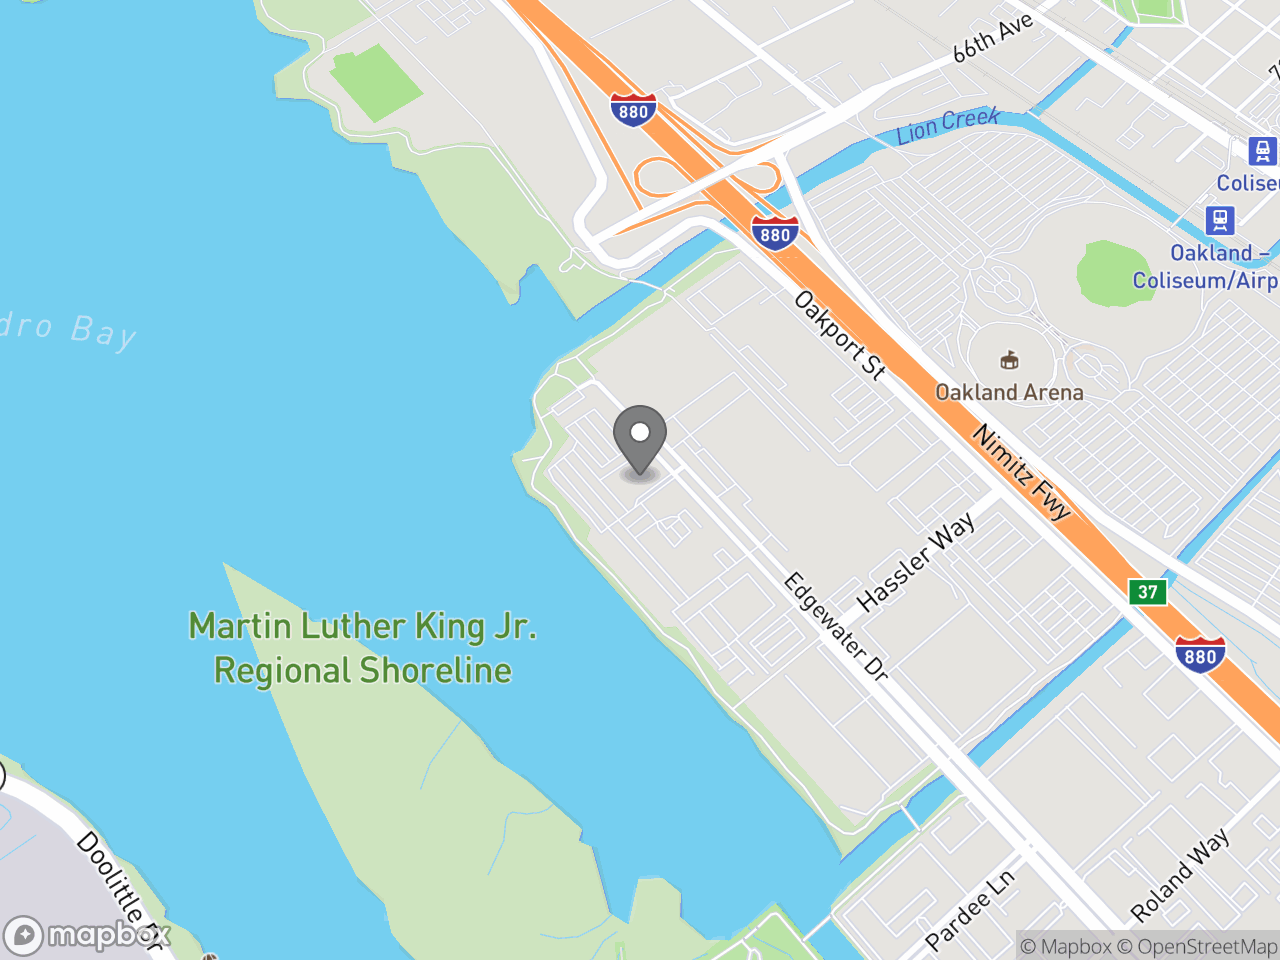 Map location for Oaktown PROUD: Prevent & Report Our Unlawful Dumping, located at 7101 Edgewater Dr in Oakland, CA 94621